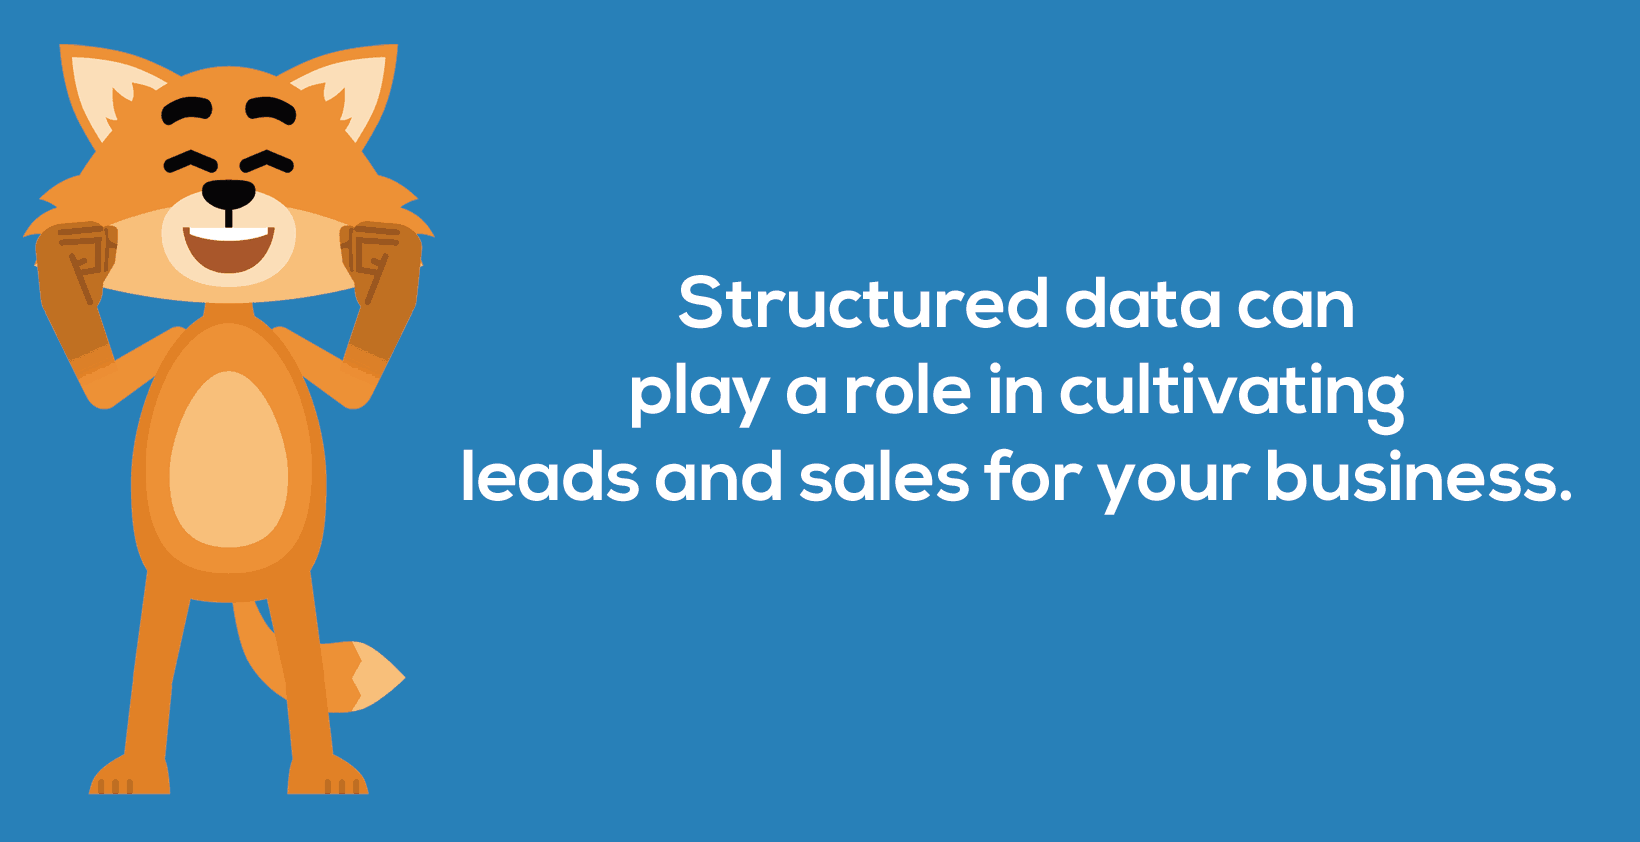 Structured data can play a role in cultivating leads and sales for your business.